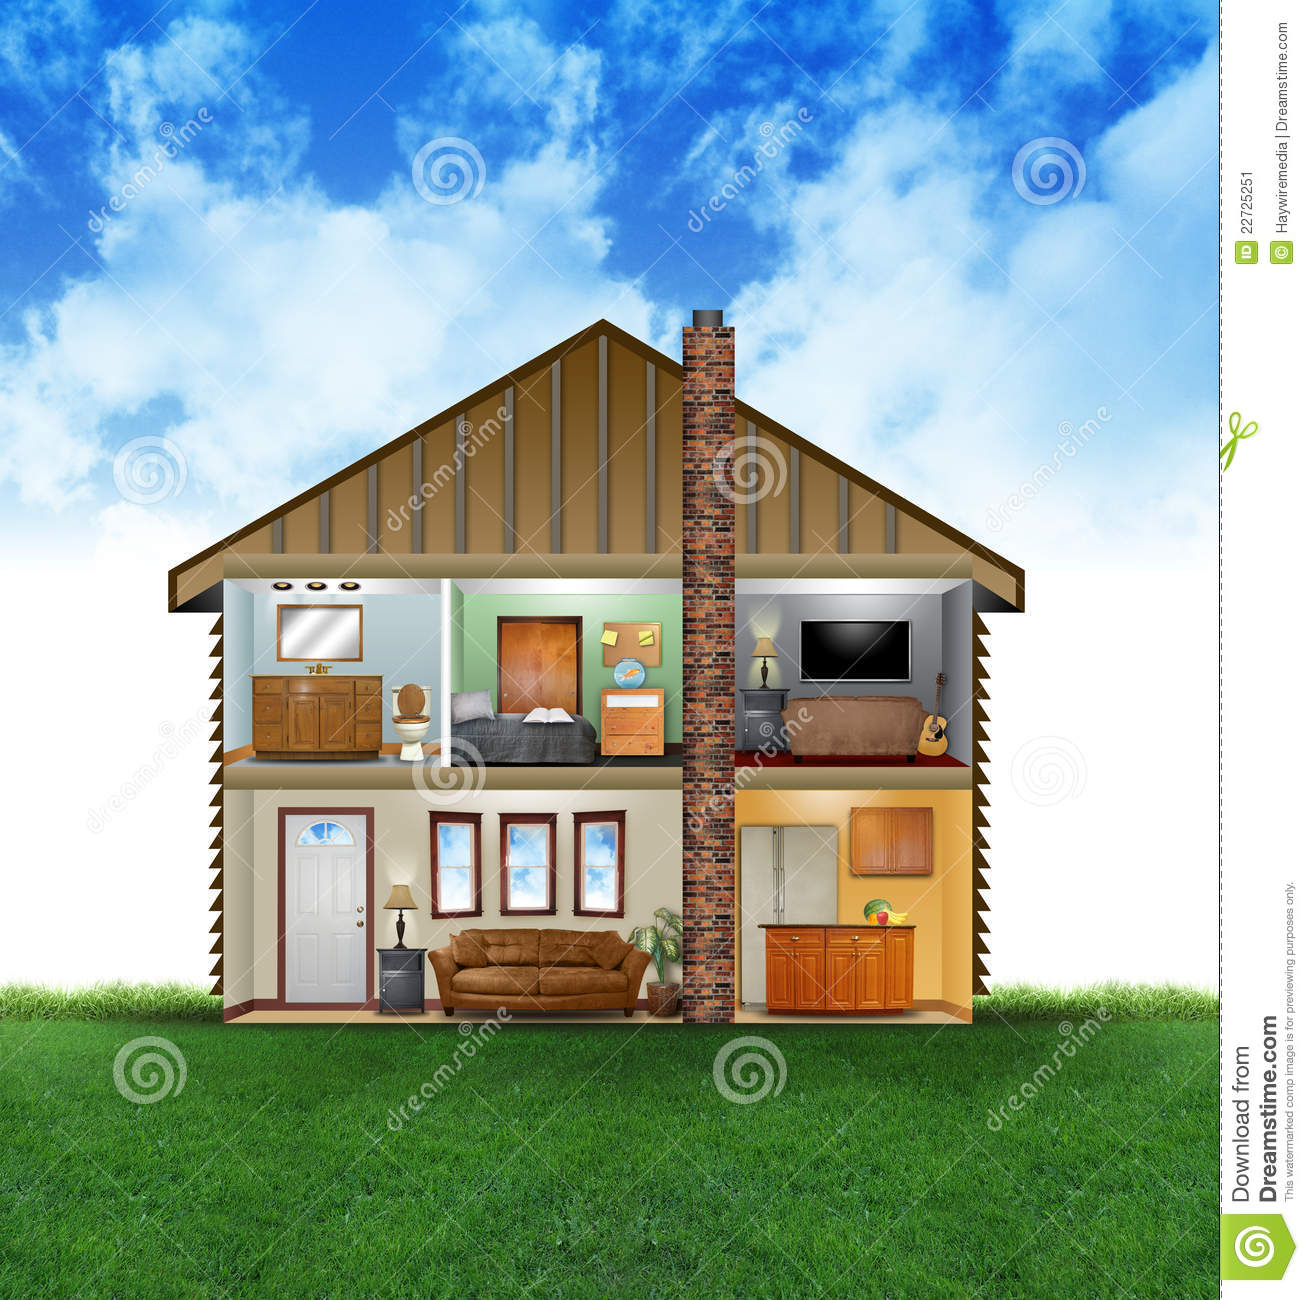 Eco friendly house interior stock illustration image for Ecological home